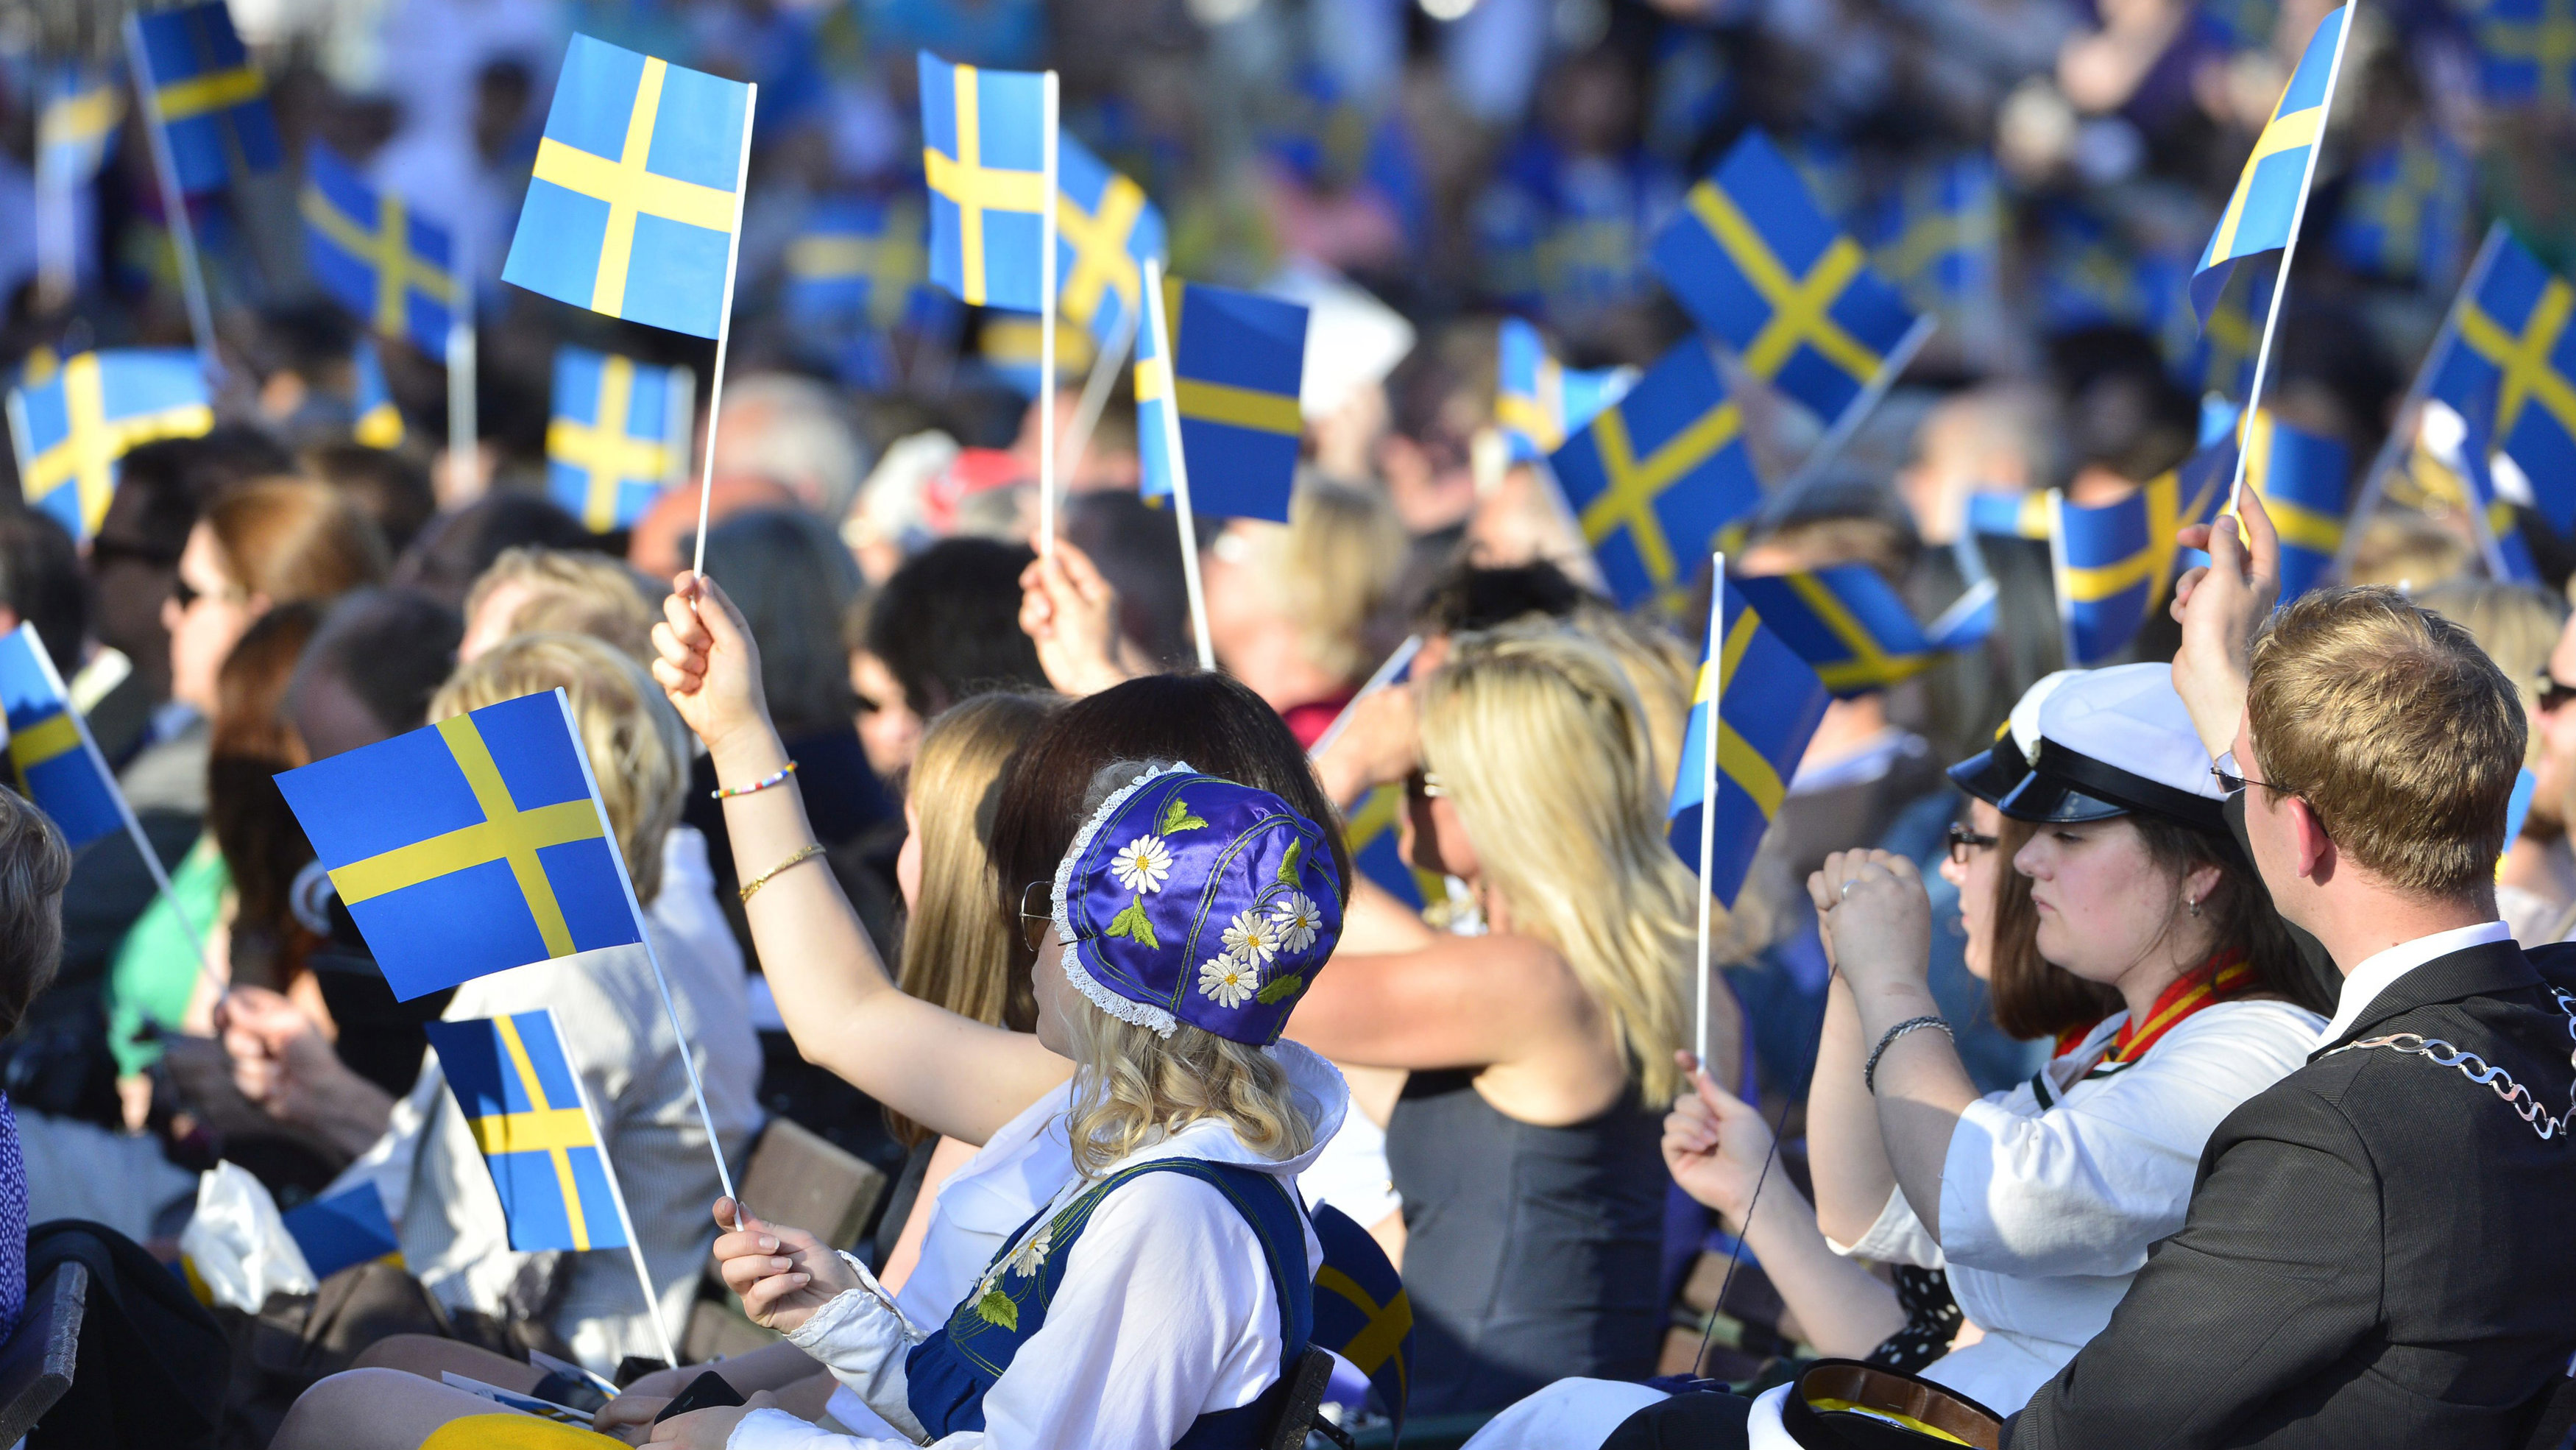 People in the audience wave Swedish flags during the traditional National Day celebrations with the royal family at Skansen in Stockholm June 6, 2013.